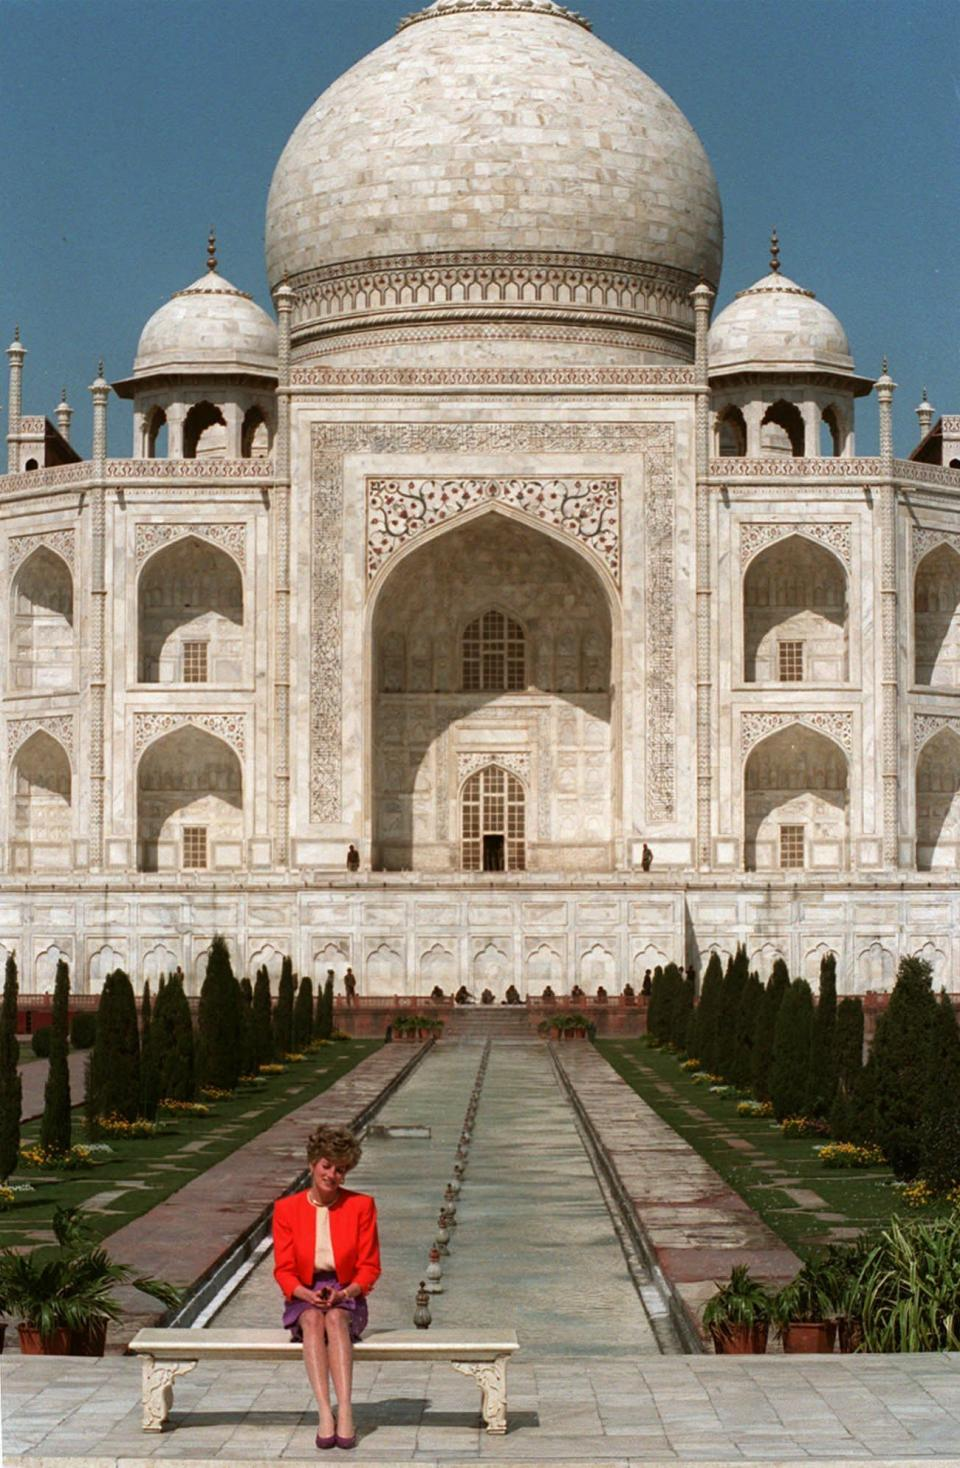 """FILE - In this file photo dated Feb. 11, 1992, Britain's Princess Diana sits alone backdropped by the Taj Mahal in Agra, India. For someone who began her life in the spotlight as """"Shy Di,"""" Princess Diana became an unlikely, revolutionary during her years in the House of Windsor. She helped modernize the monarchy by making it more personal, changing the way the royal family related to people. By interacting more intimately with the public -- kneeling to the level of children, sitting on edge of a patient's hospital bed, writing personal notes to her fans -- she set an example that has been followed by other royals as the monarchy worked to become more human and remain relevant in the 21st century. (AP photo/Udo Weitz, File)"""